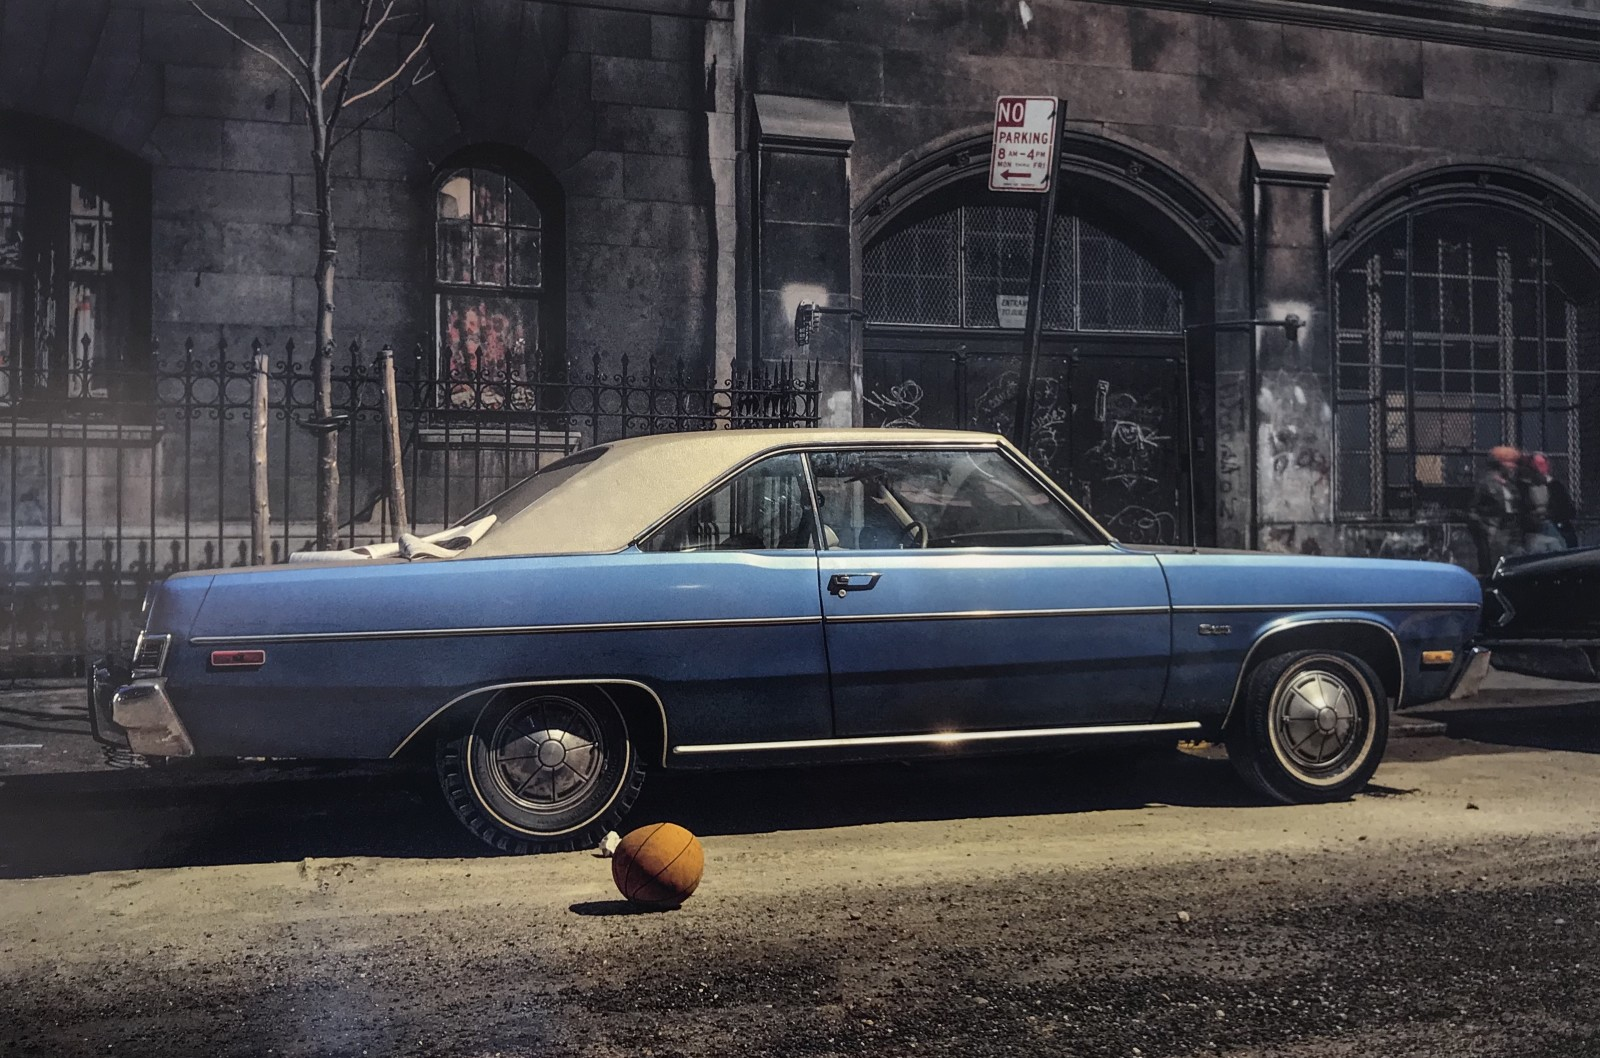 Basketball Car, Plymouth Duster, 1974